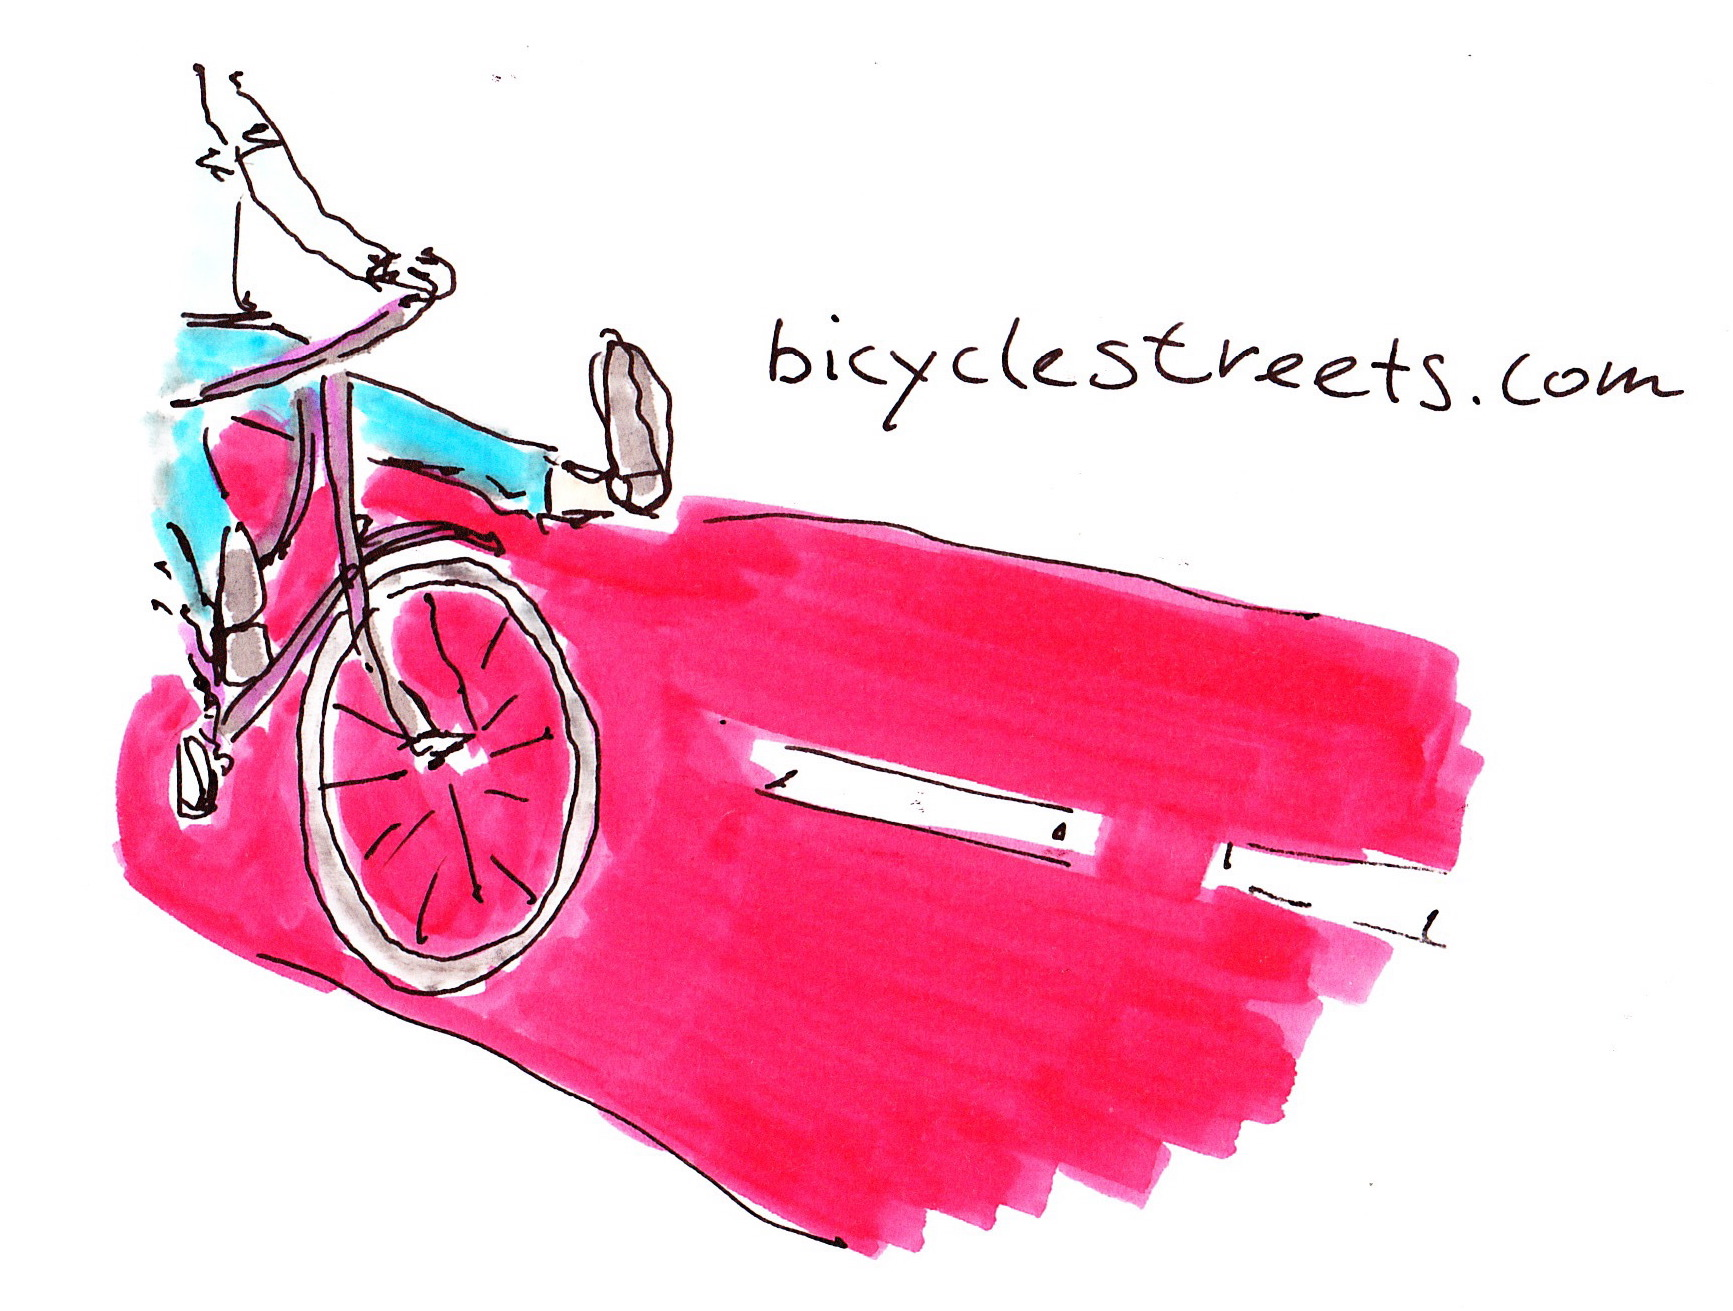 bicyclestreets